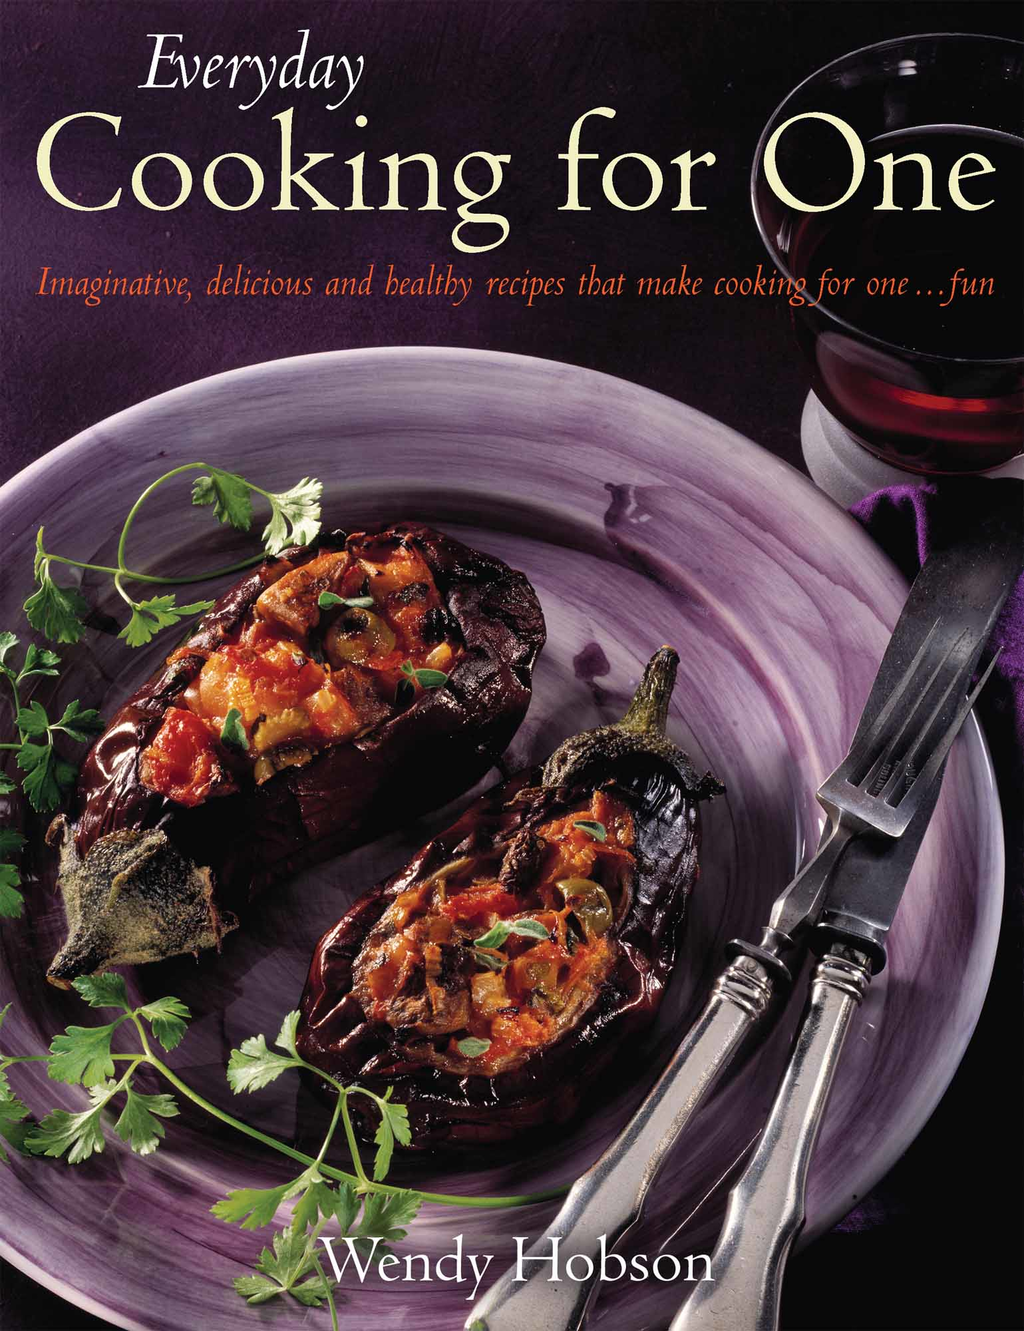 Everyday Cooking For One Imaginative,  delicious and healthy recipes that make cooking for one ...fun